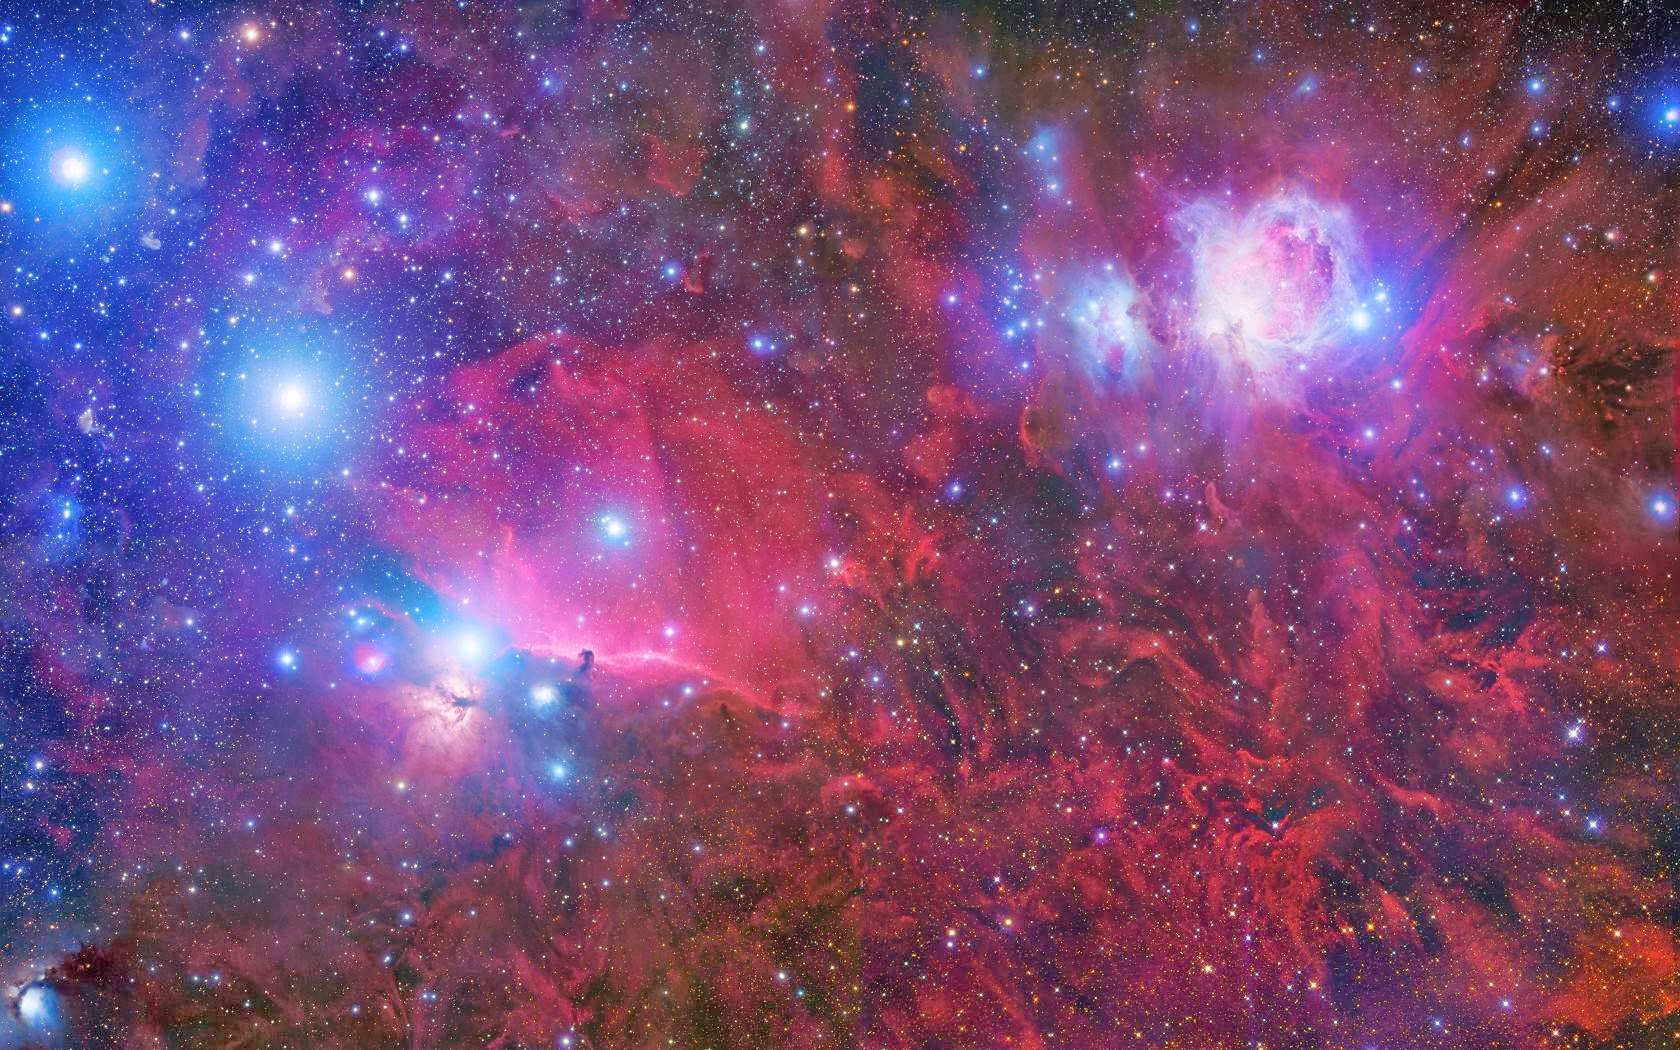 Trippy Space Twitter Backgrounds Trippy space backgrounds 160jpg 1680x1050